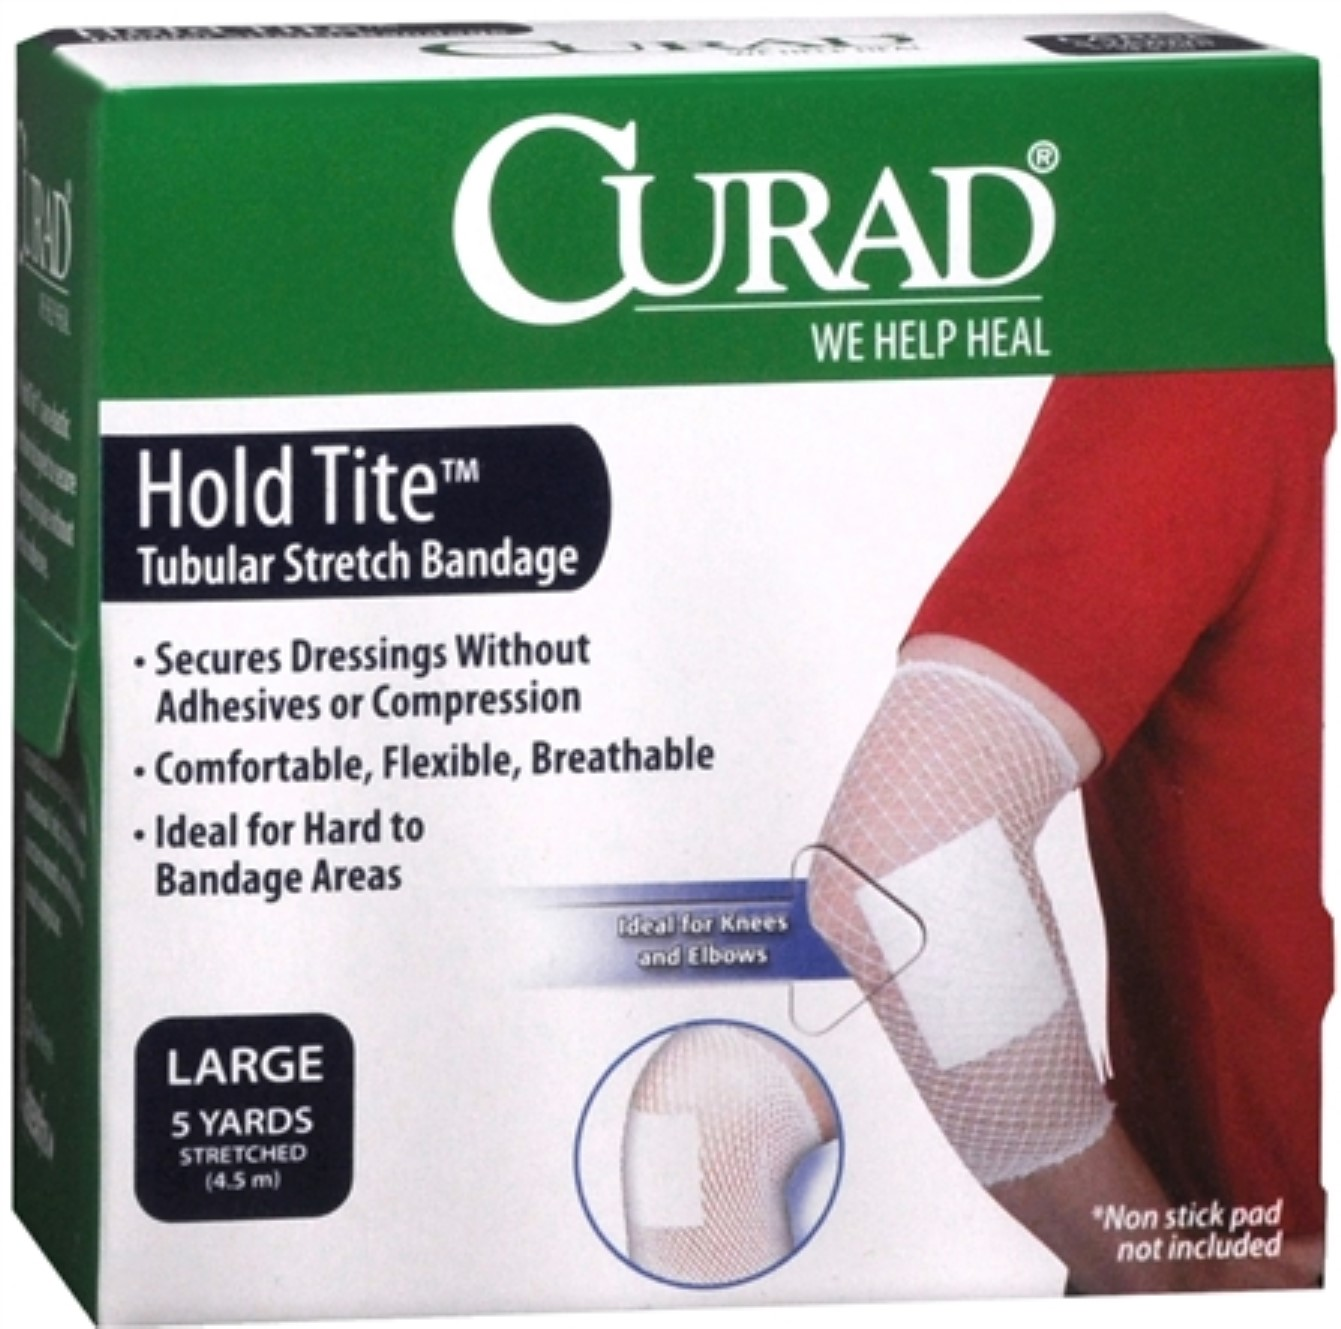 Curad Hold Tite Tubular Stretch Bandage Large 1 Each